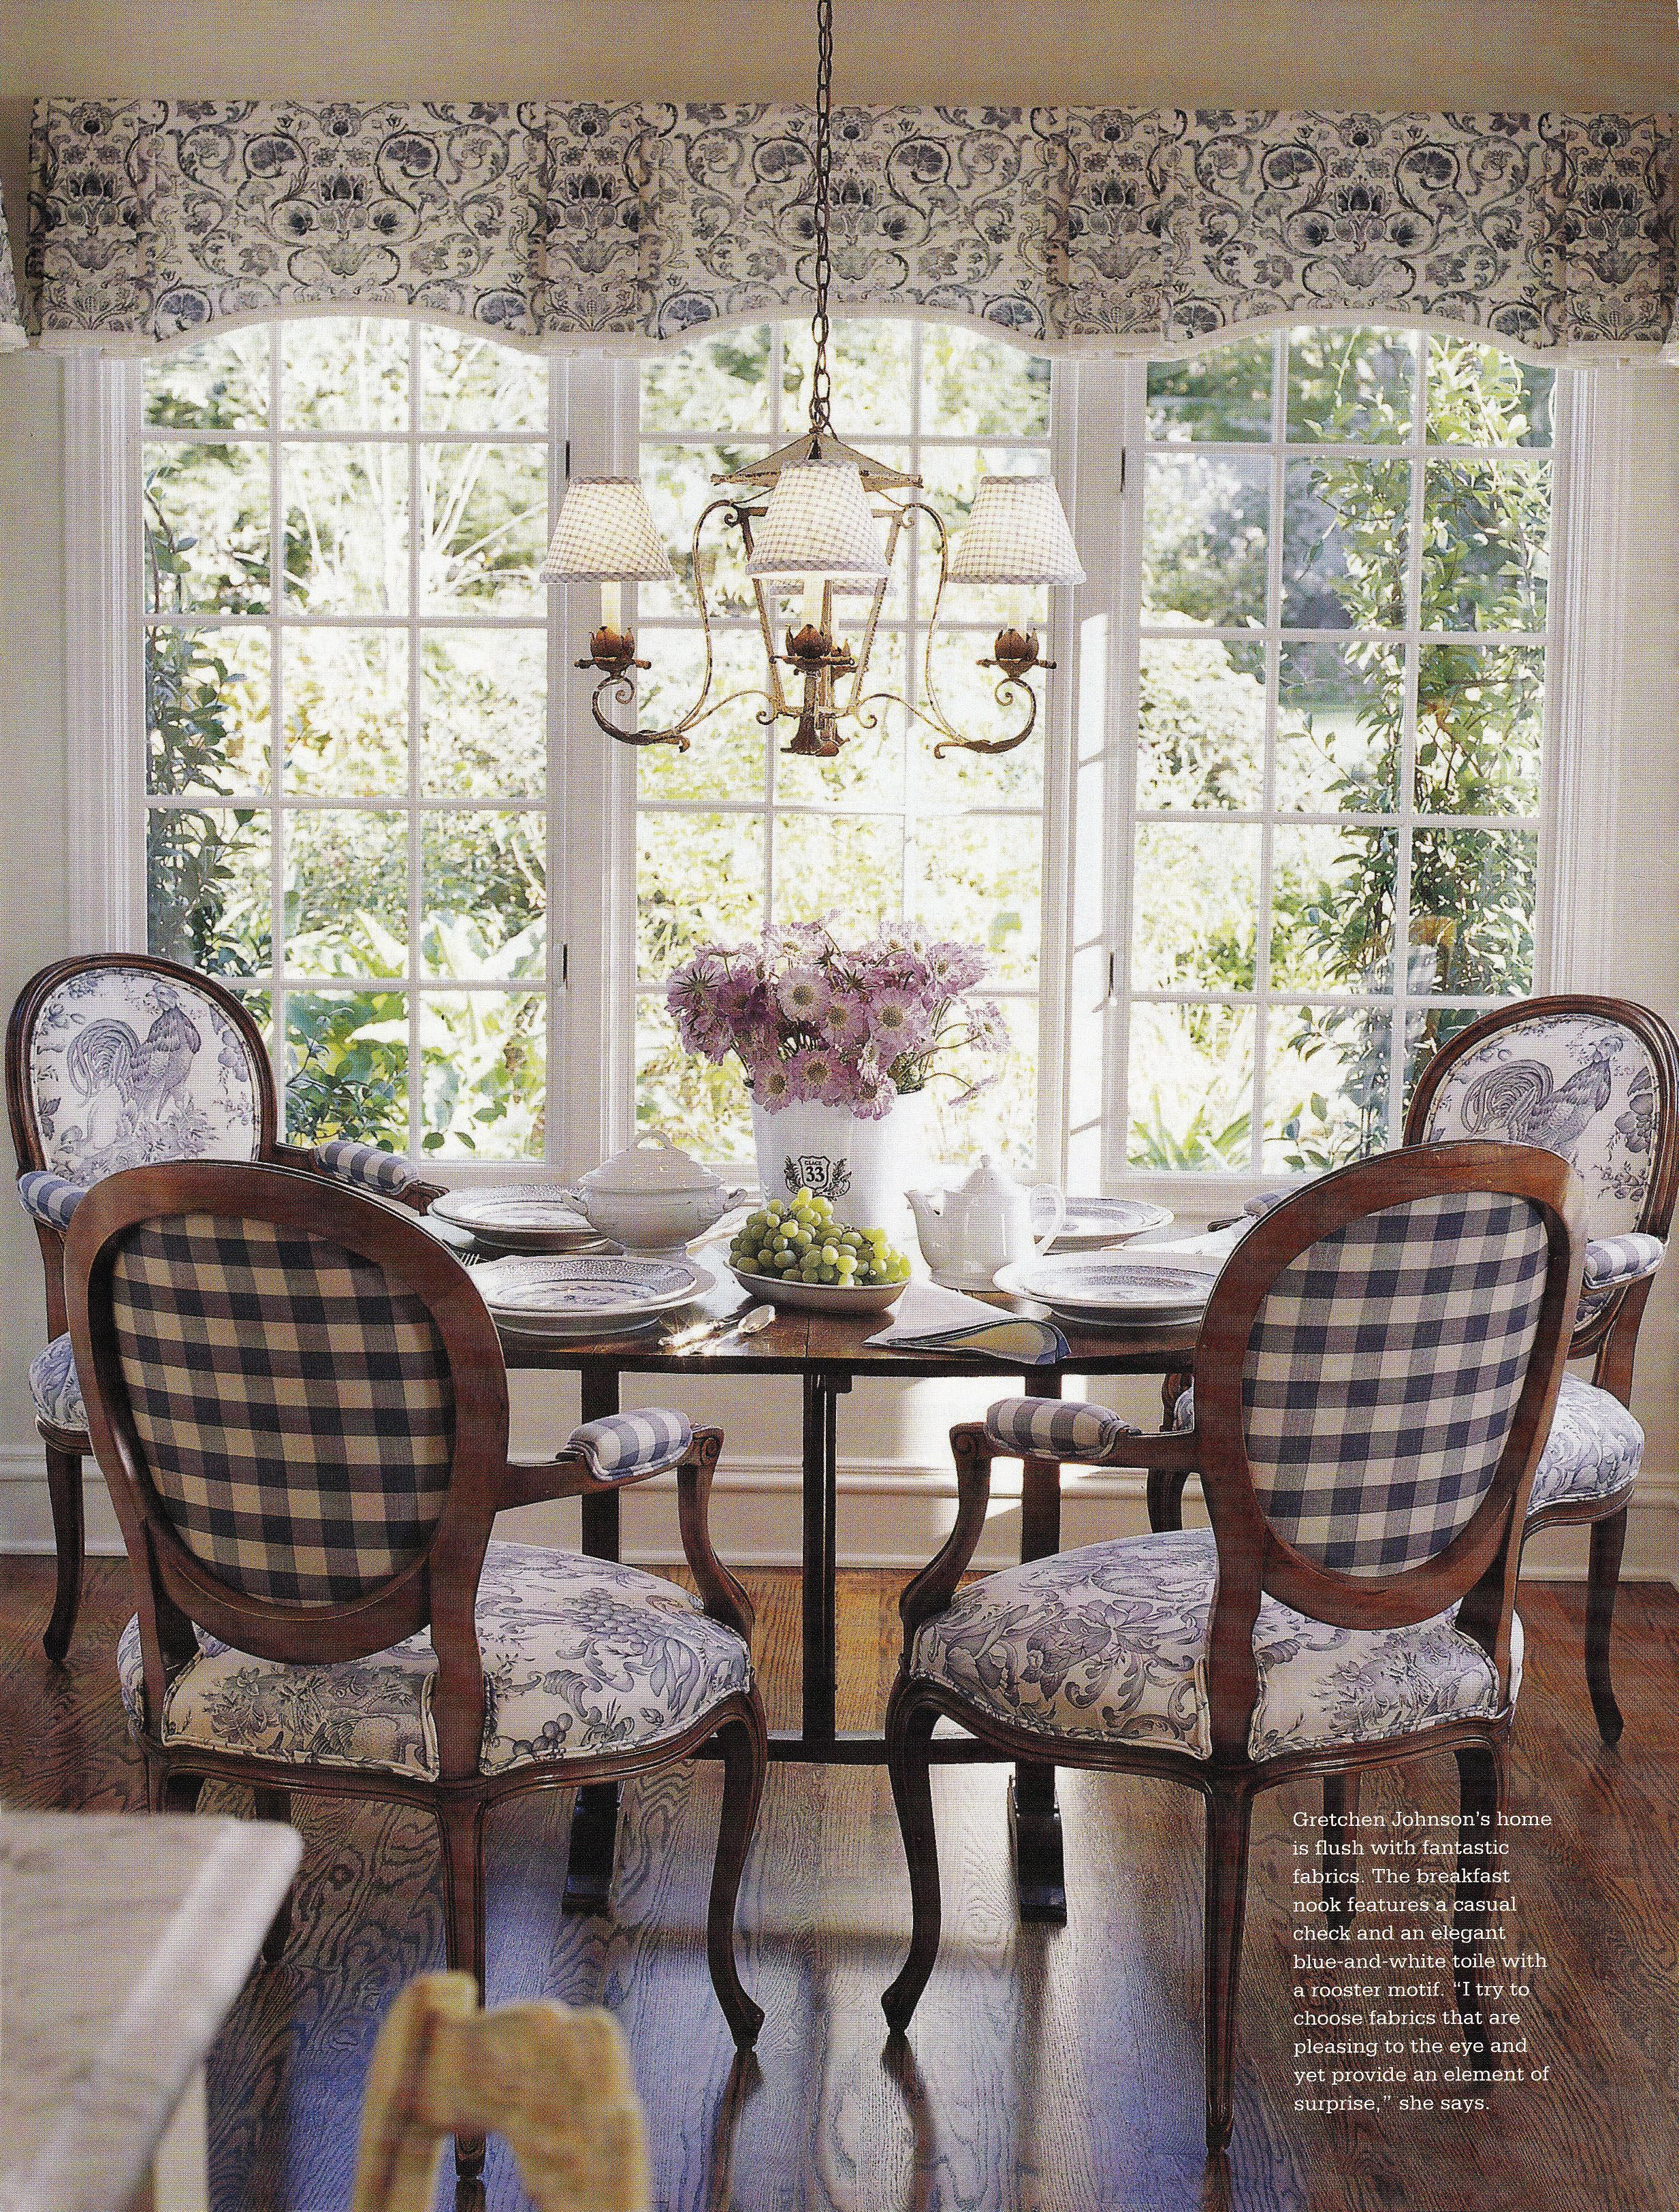 Discover dining room chairs ideas and inspiration for your dining